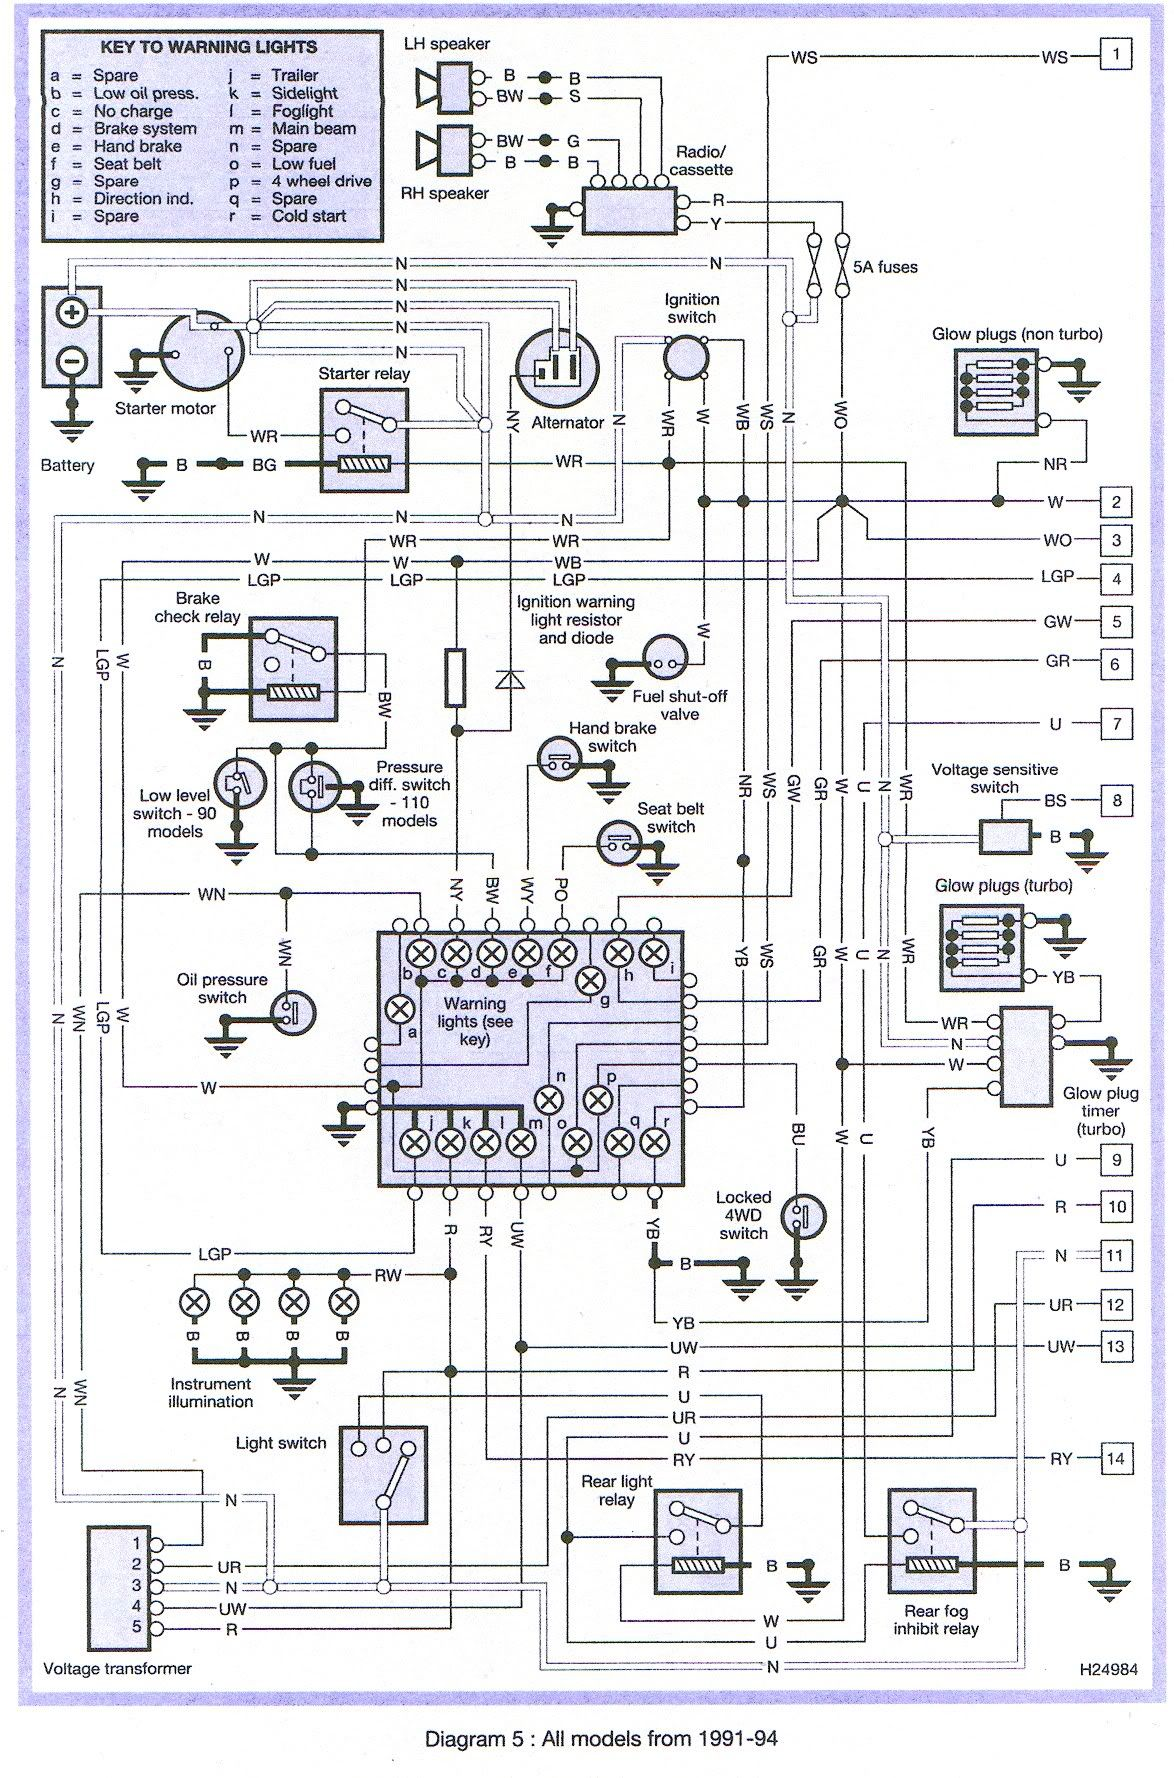 Daewoo Radio Wiring Diagram | Wiring Liry on